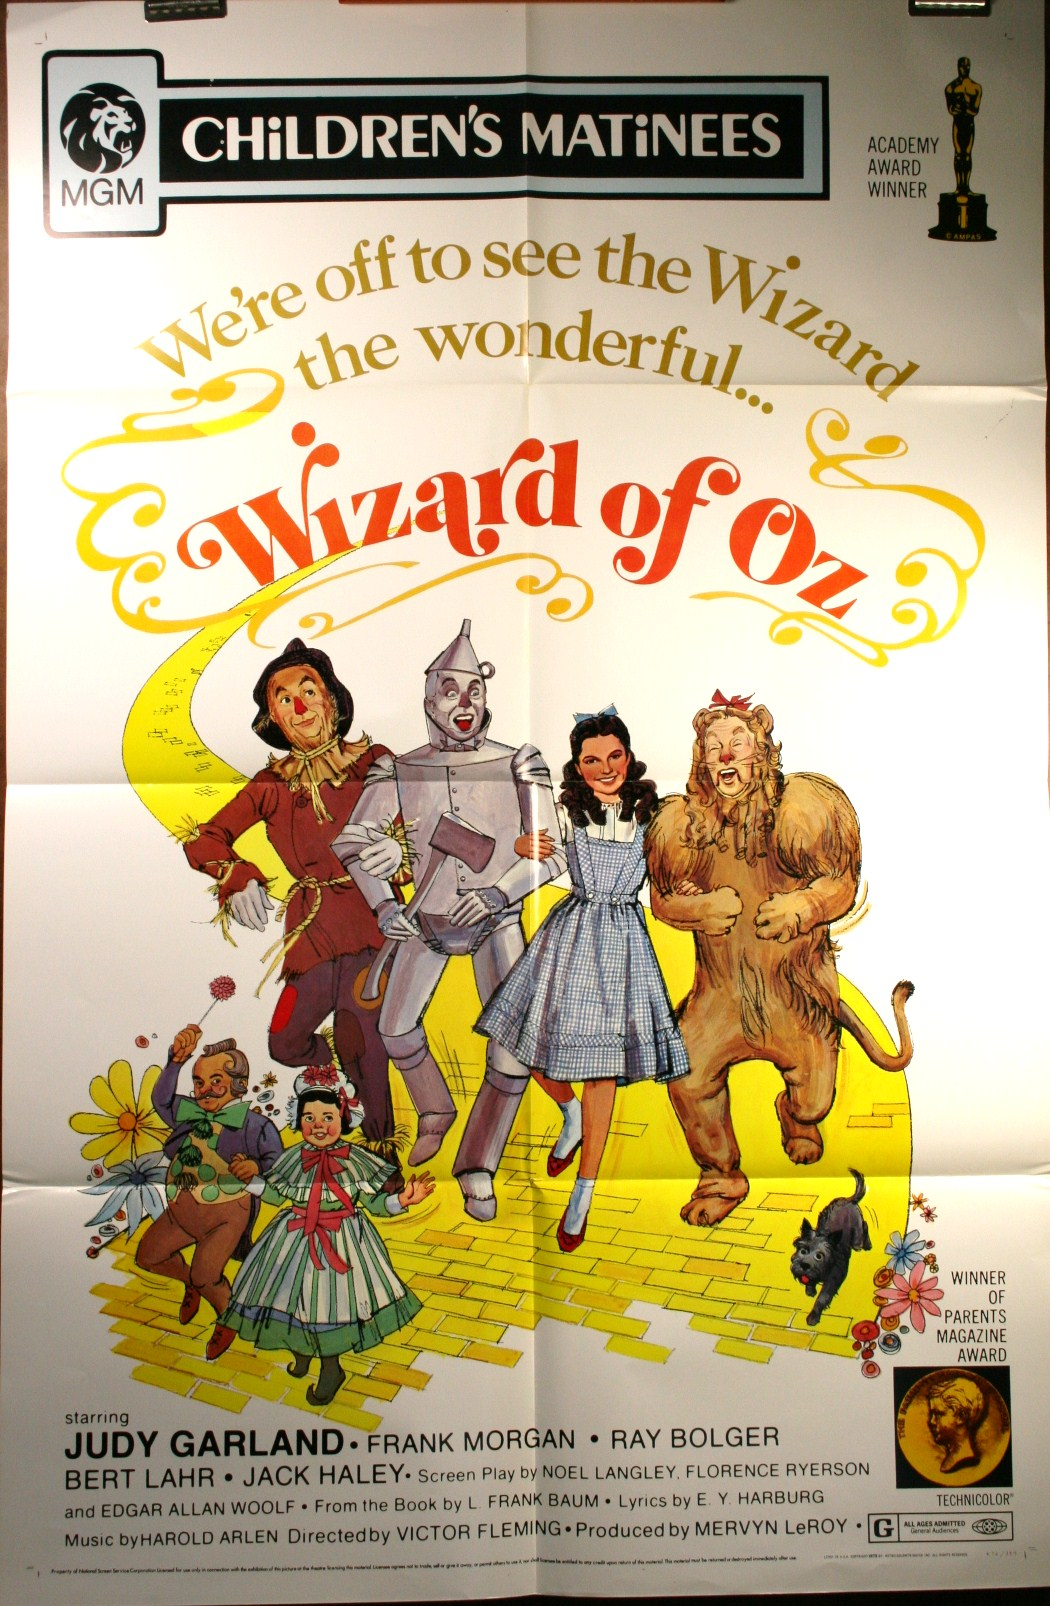 a description of the fairy tales such as mervyn leroys production of the wizard of oz The making of a movie classic states that mervyn leroy was experience with the munchkinland oz/ the wizard of oz: an american fairy tale].